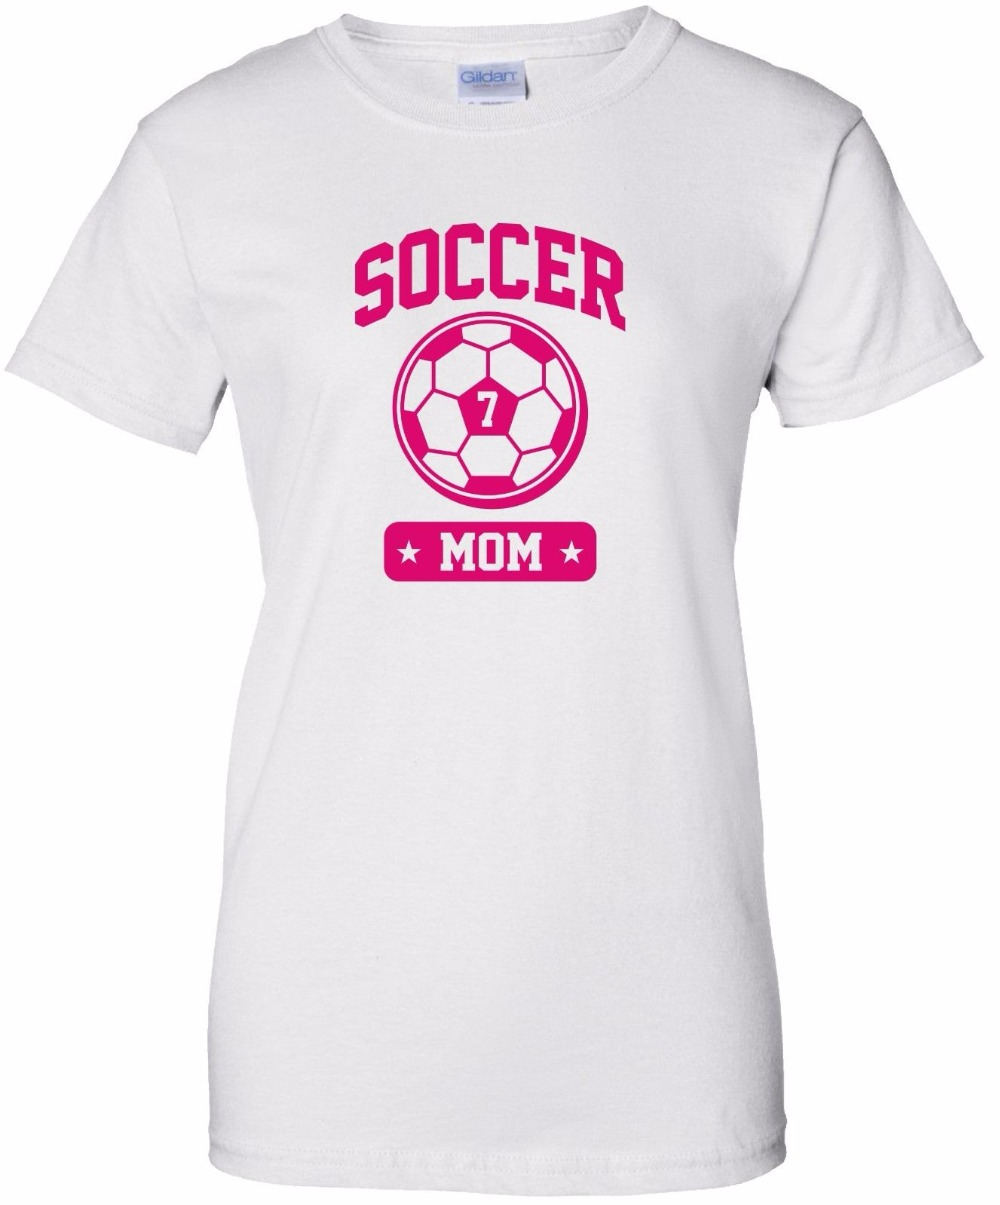 Design t shirt soccer - 2017 Designs Women S T Shirt Brand Clothing Summer Hip Hop Fitness Personalized Soccers Mom Cotton Tops Tees